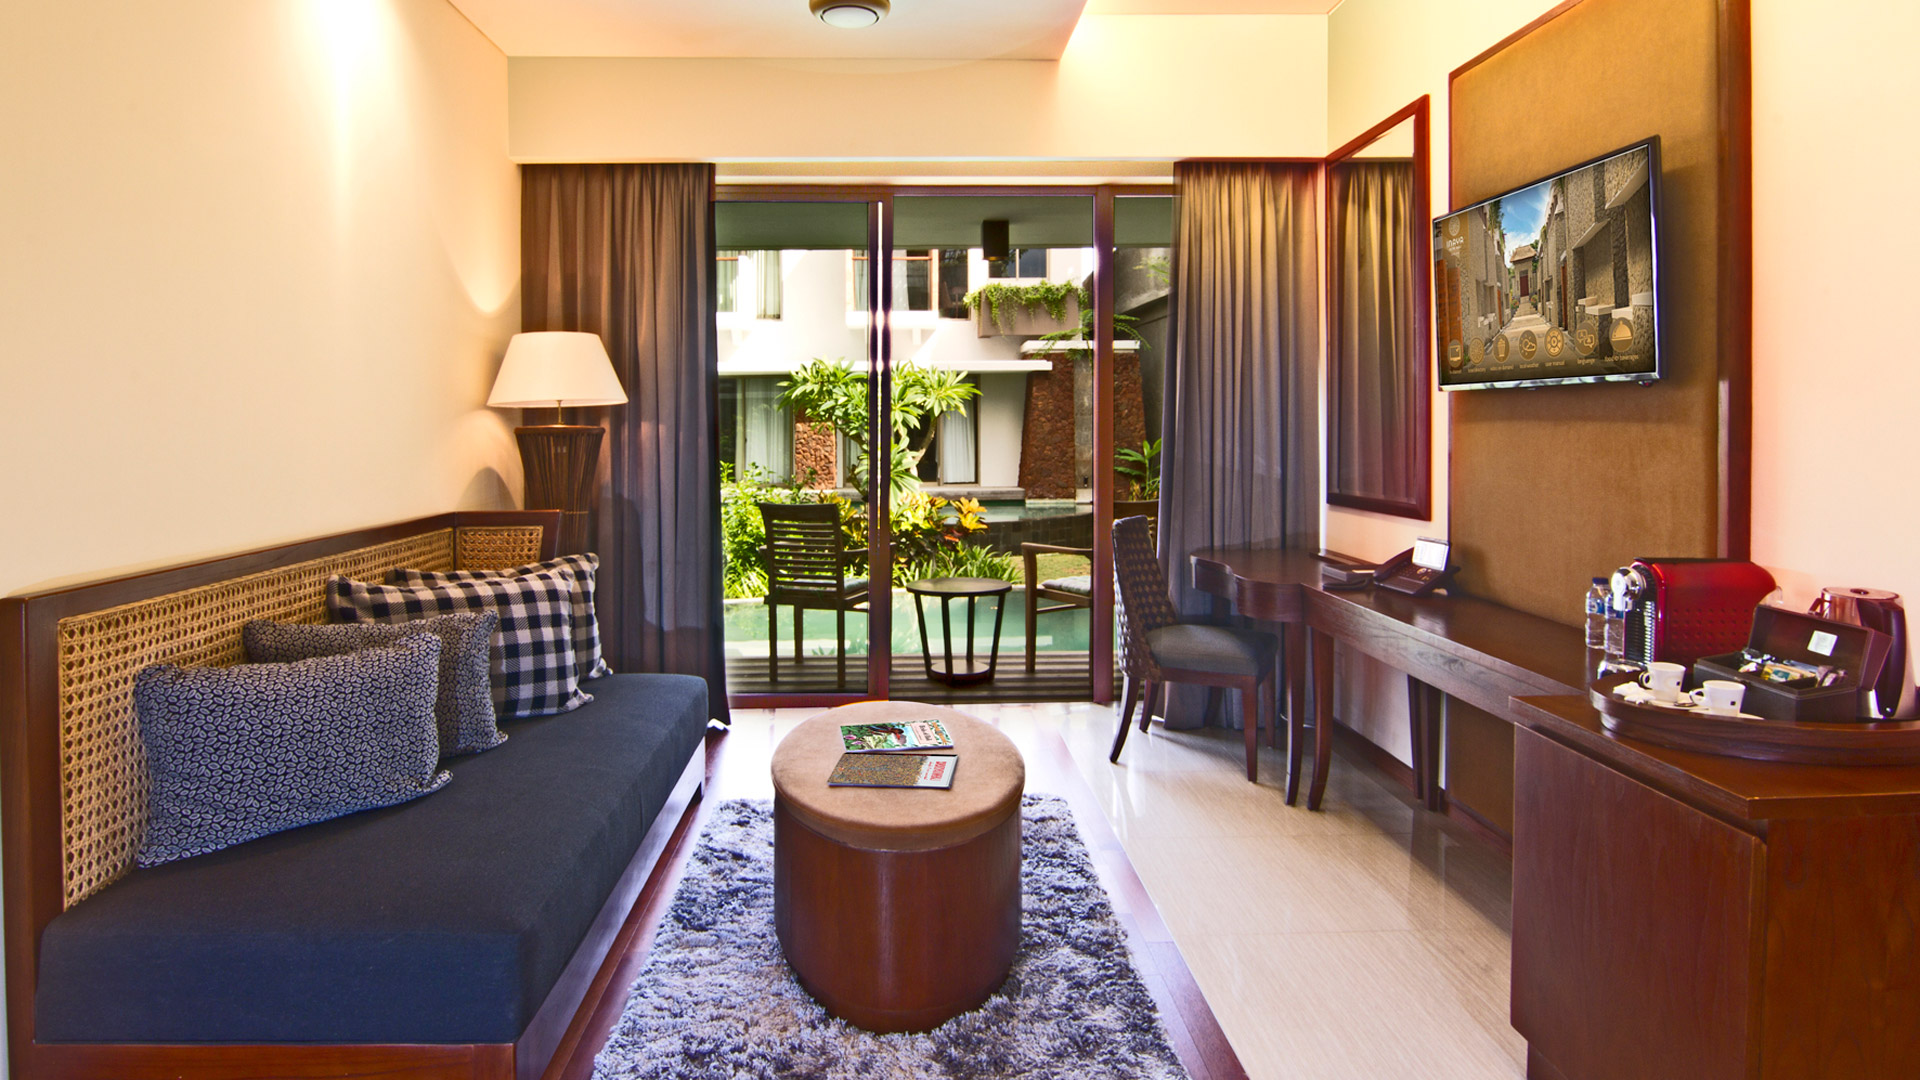 Stay for 3 nights and get complimentary 4th night